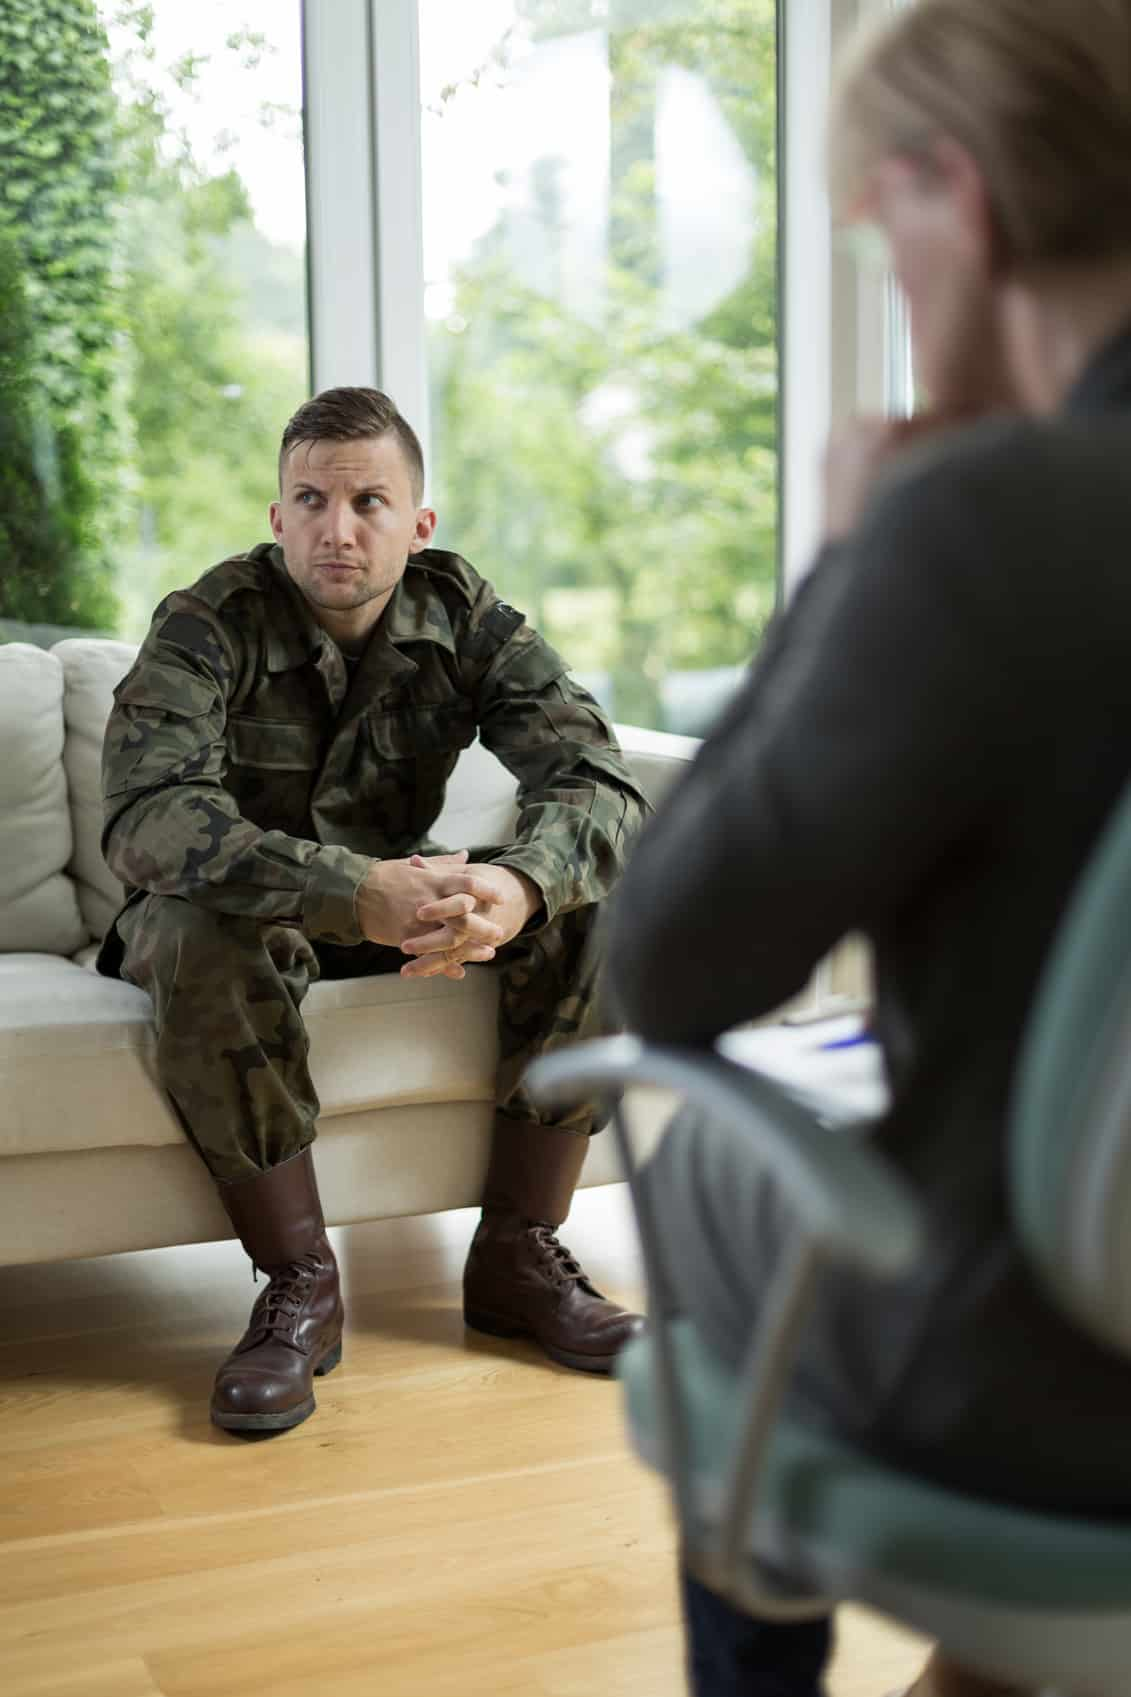 Image of soldier with posttraumatic stress disorder during therapy